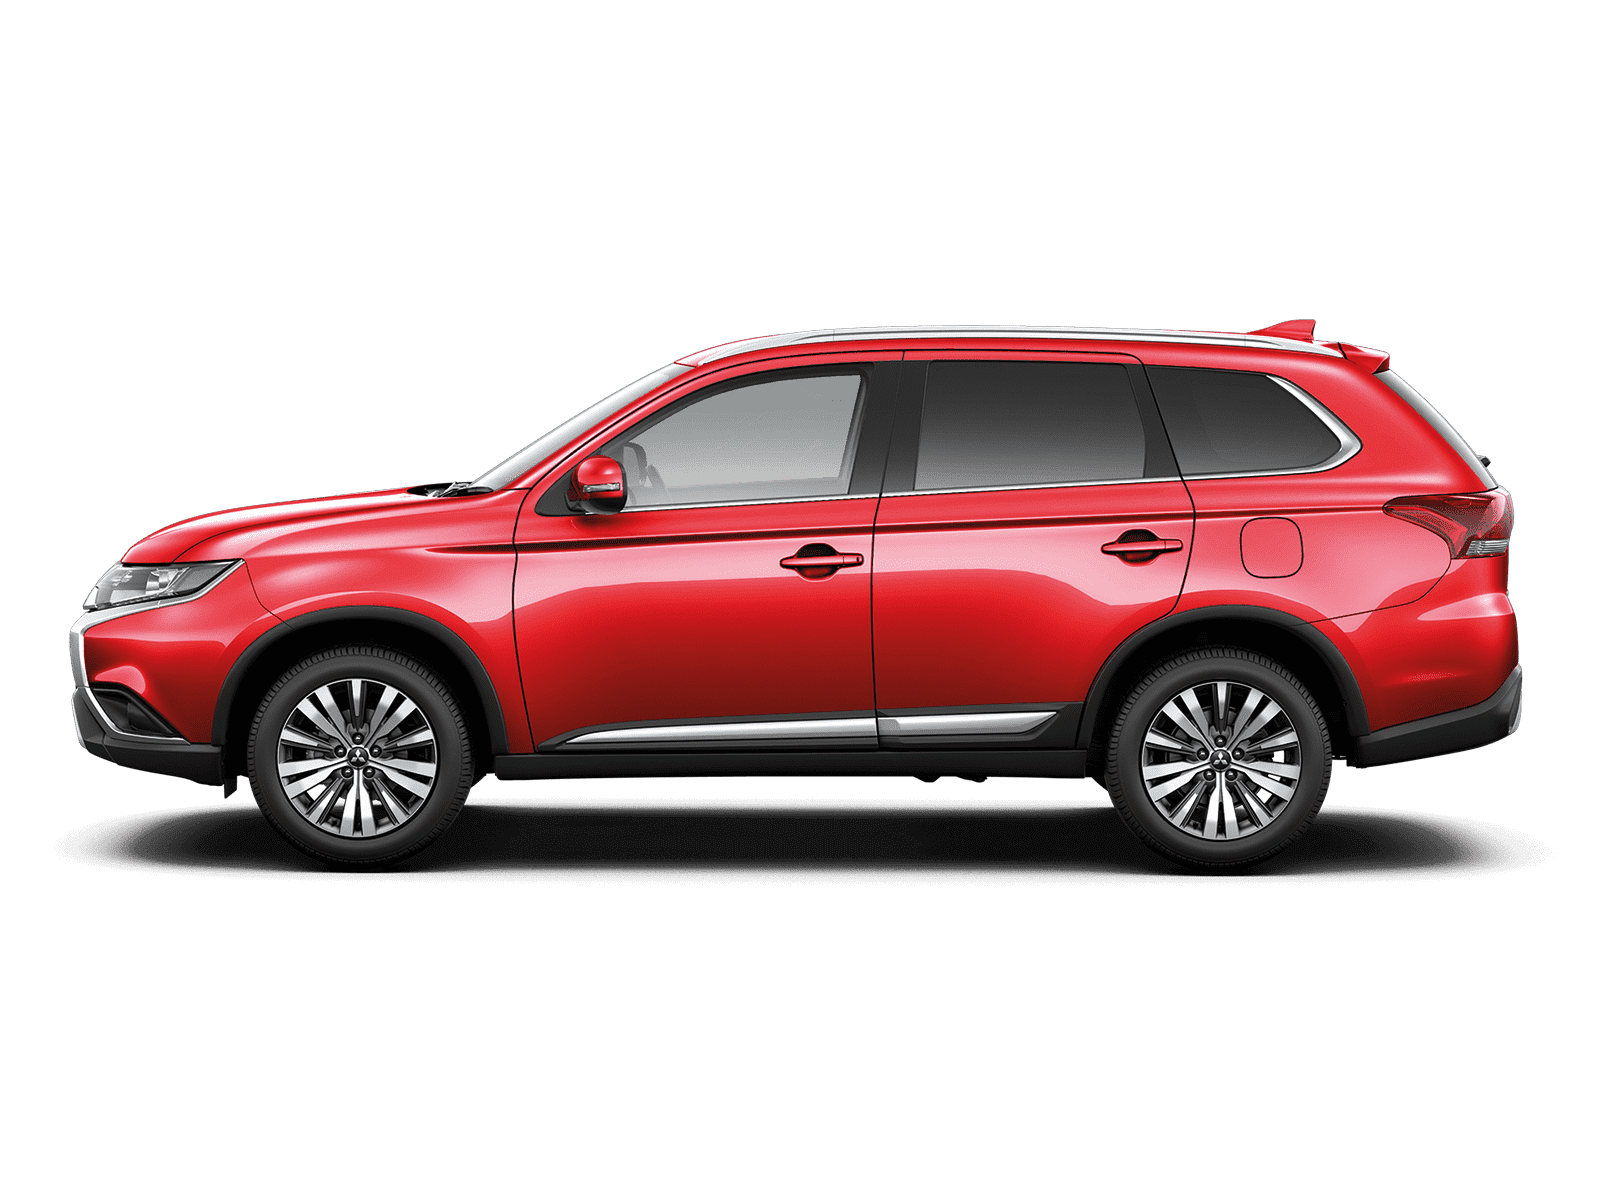 Mitsubishi Outlander Petrol CVT Automatic Orient Red